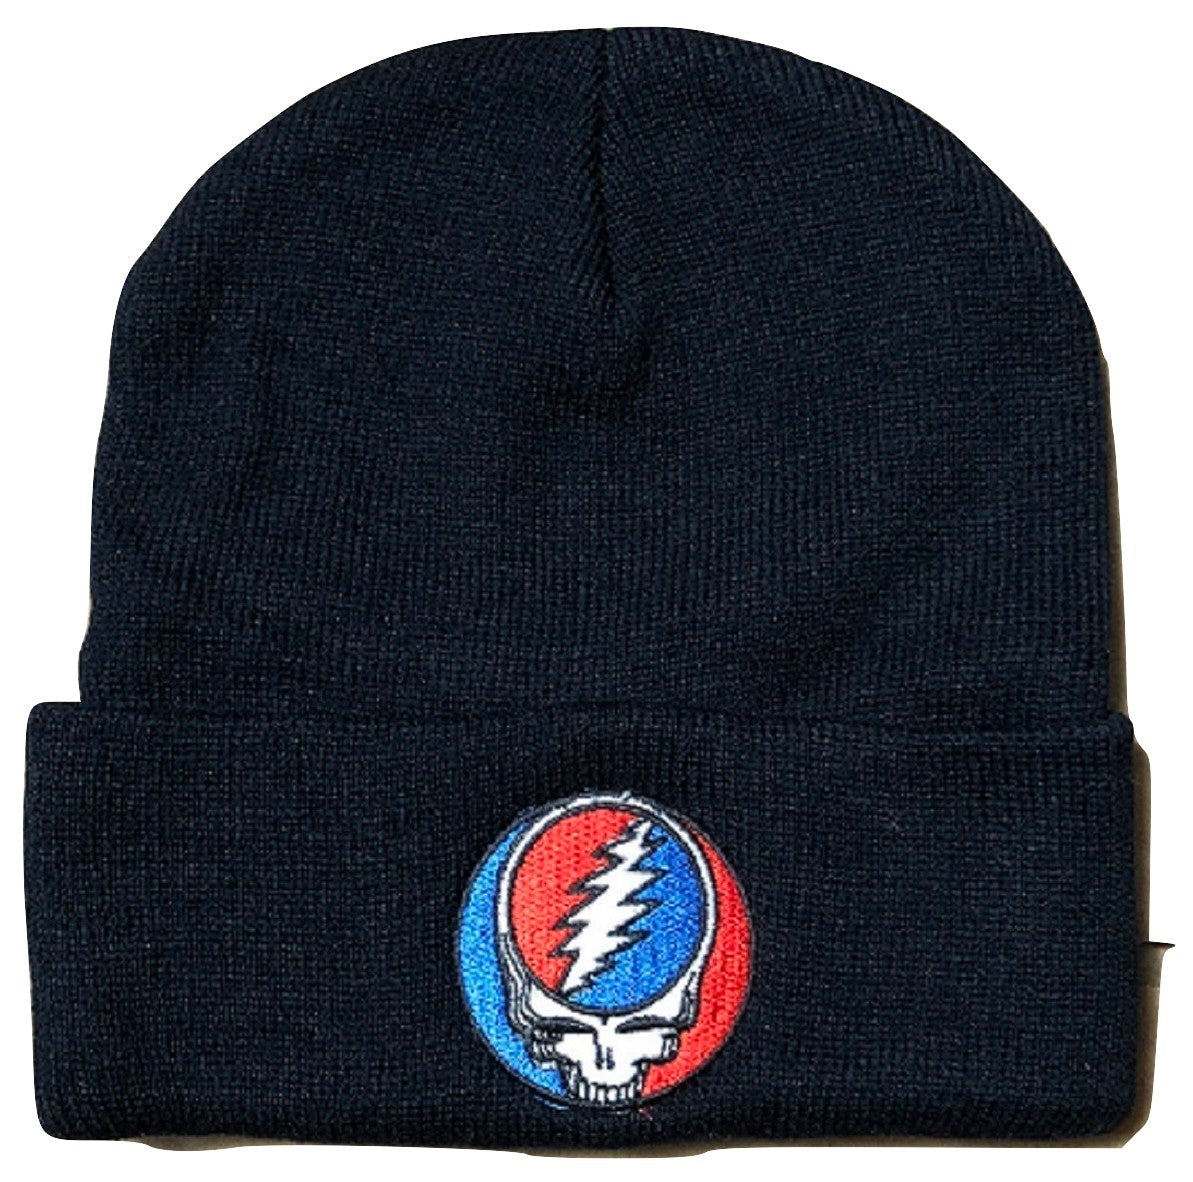 Grateful Dead Steal Your Face Black Beanie Hat